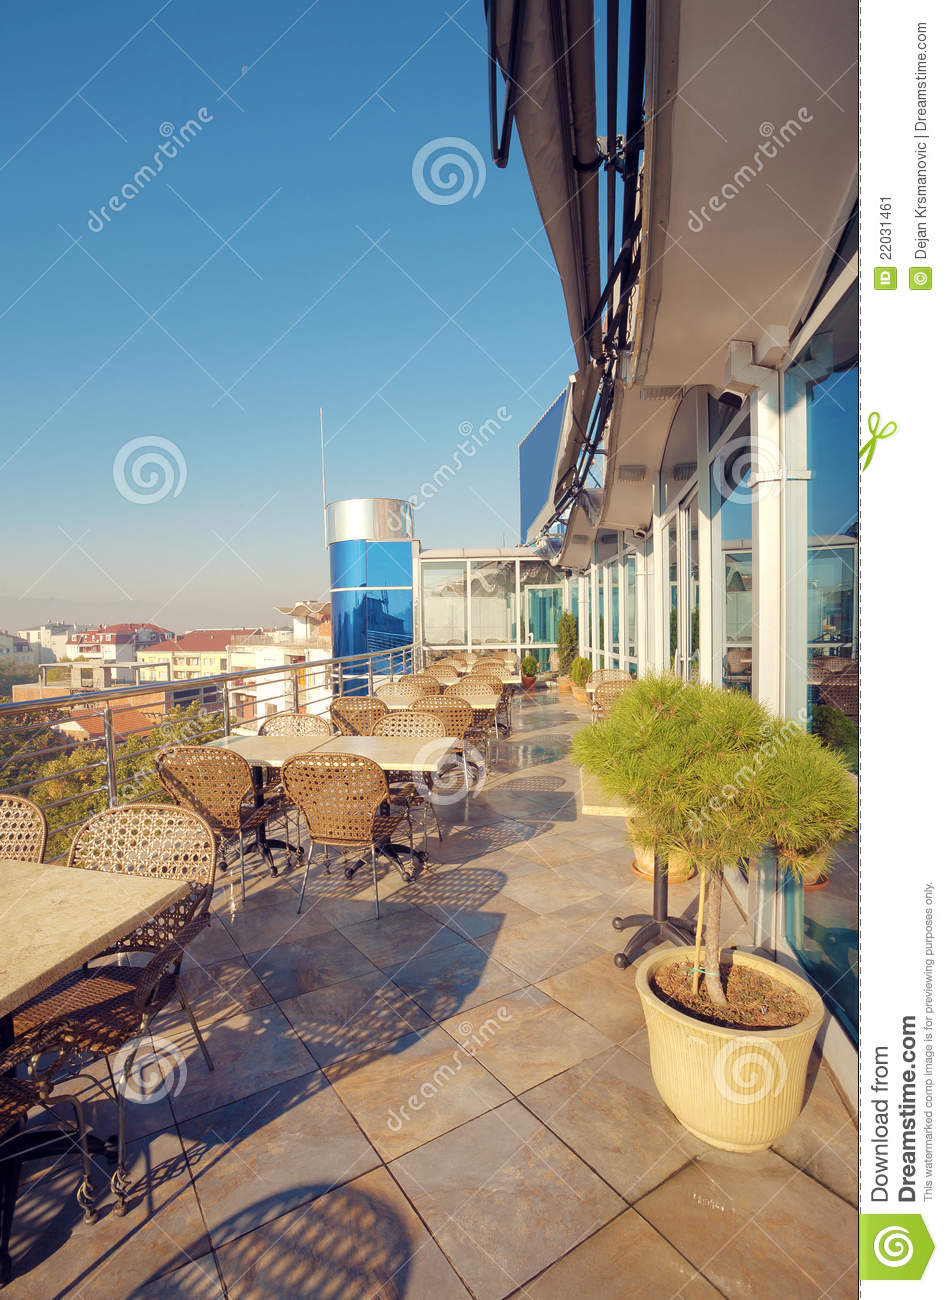 Restaurant ext rieur image stock image 22031461 for Exterieur restaurant